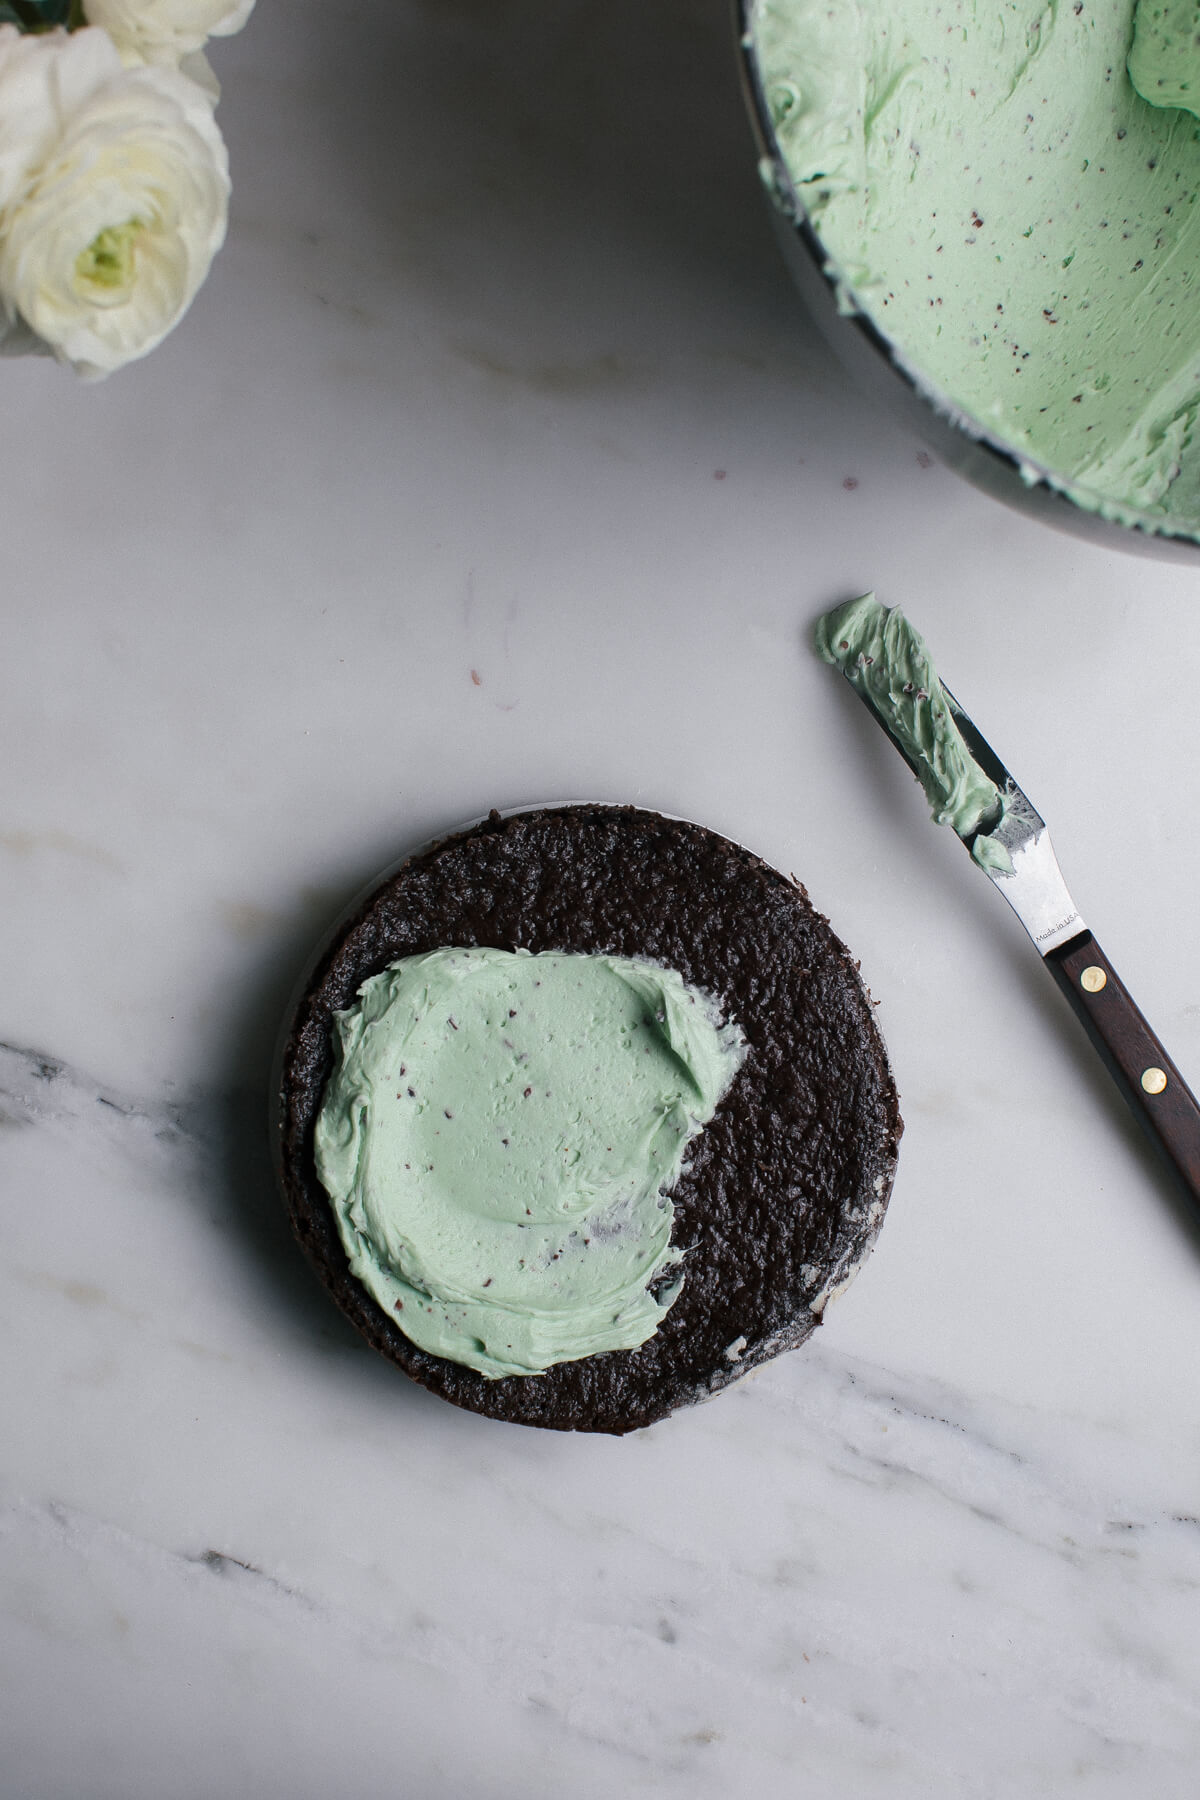 I Think My Love Of Mint Chocolate Chip Had To Do With The Fake Green Color That Was So Prettyor Maybe It Shards Vs Chips